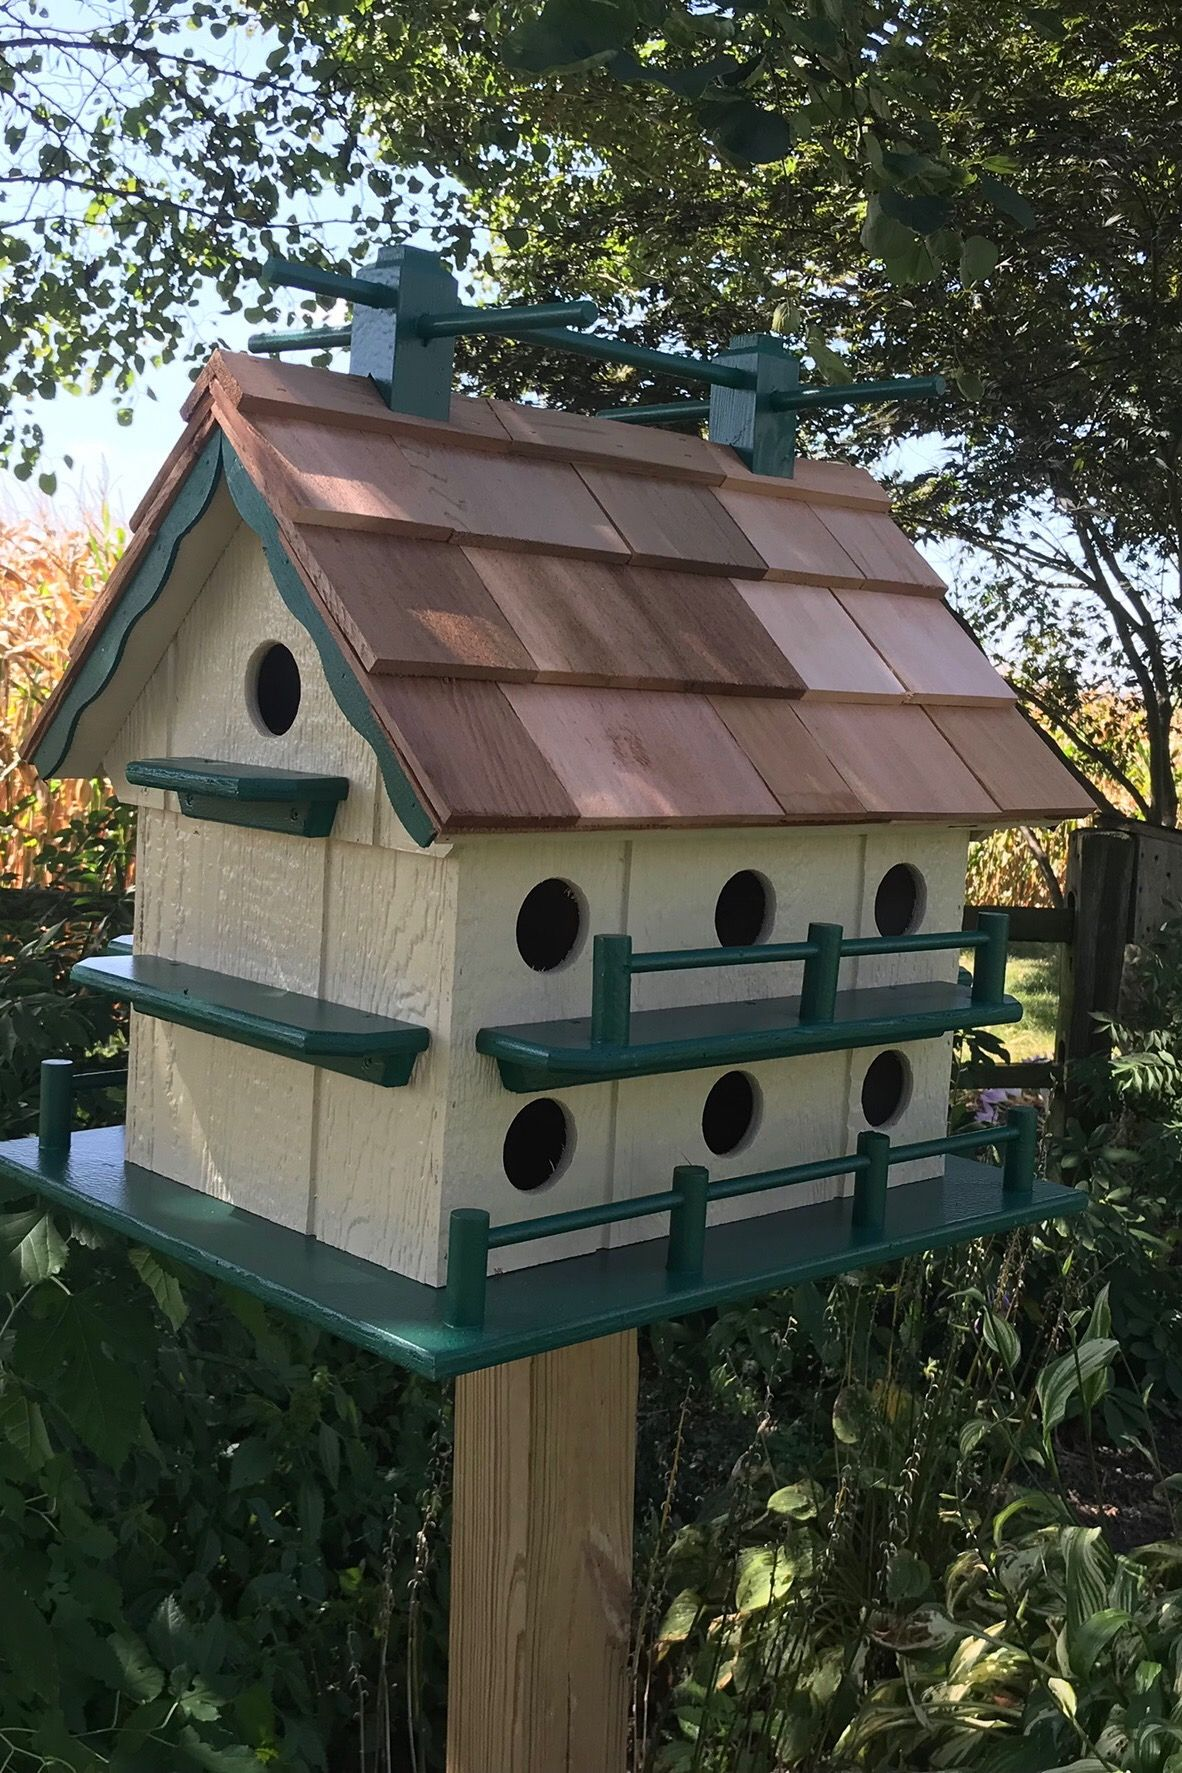 Martin House Birdhouse Removable Roof For Easy Clean Out Etsy In 2020 Bird Houses Bird Houses Diy Large Bird Houses